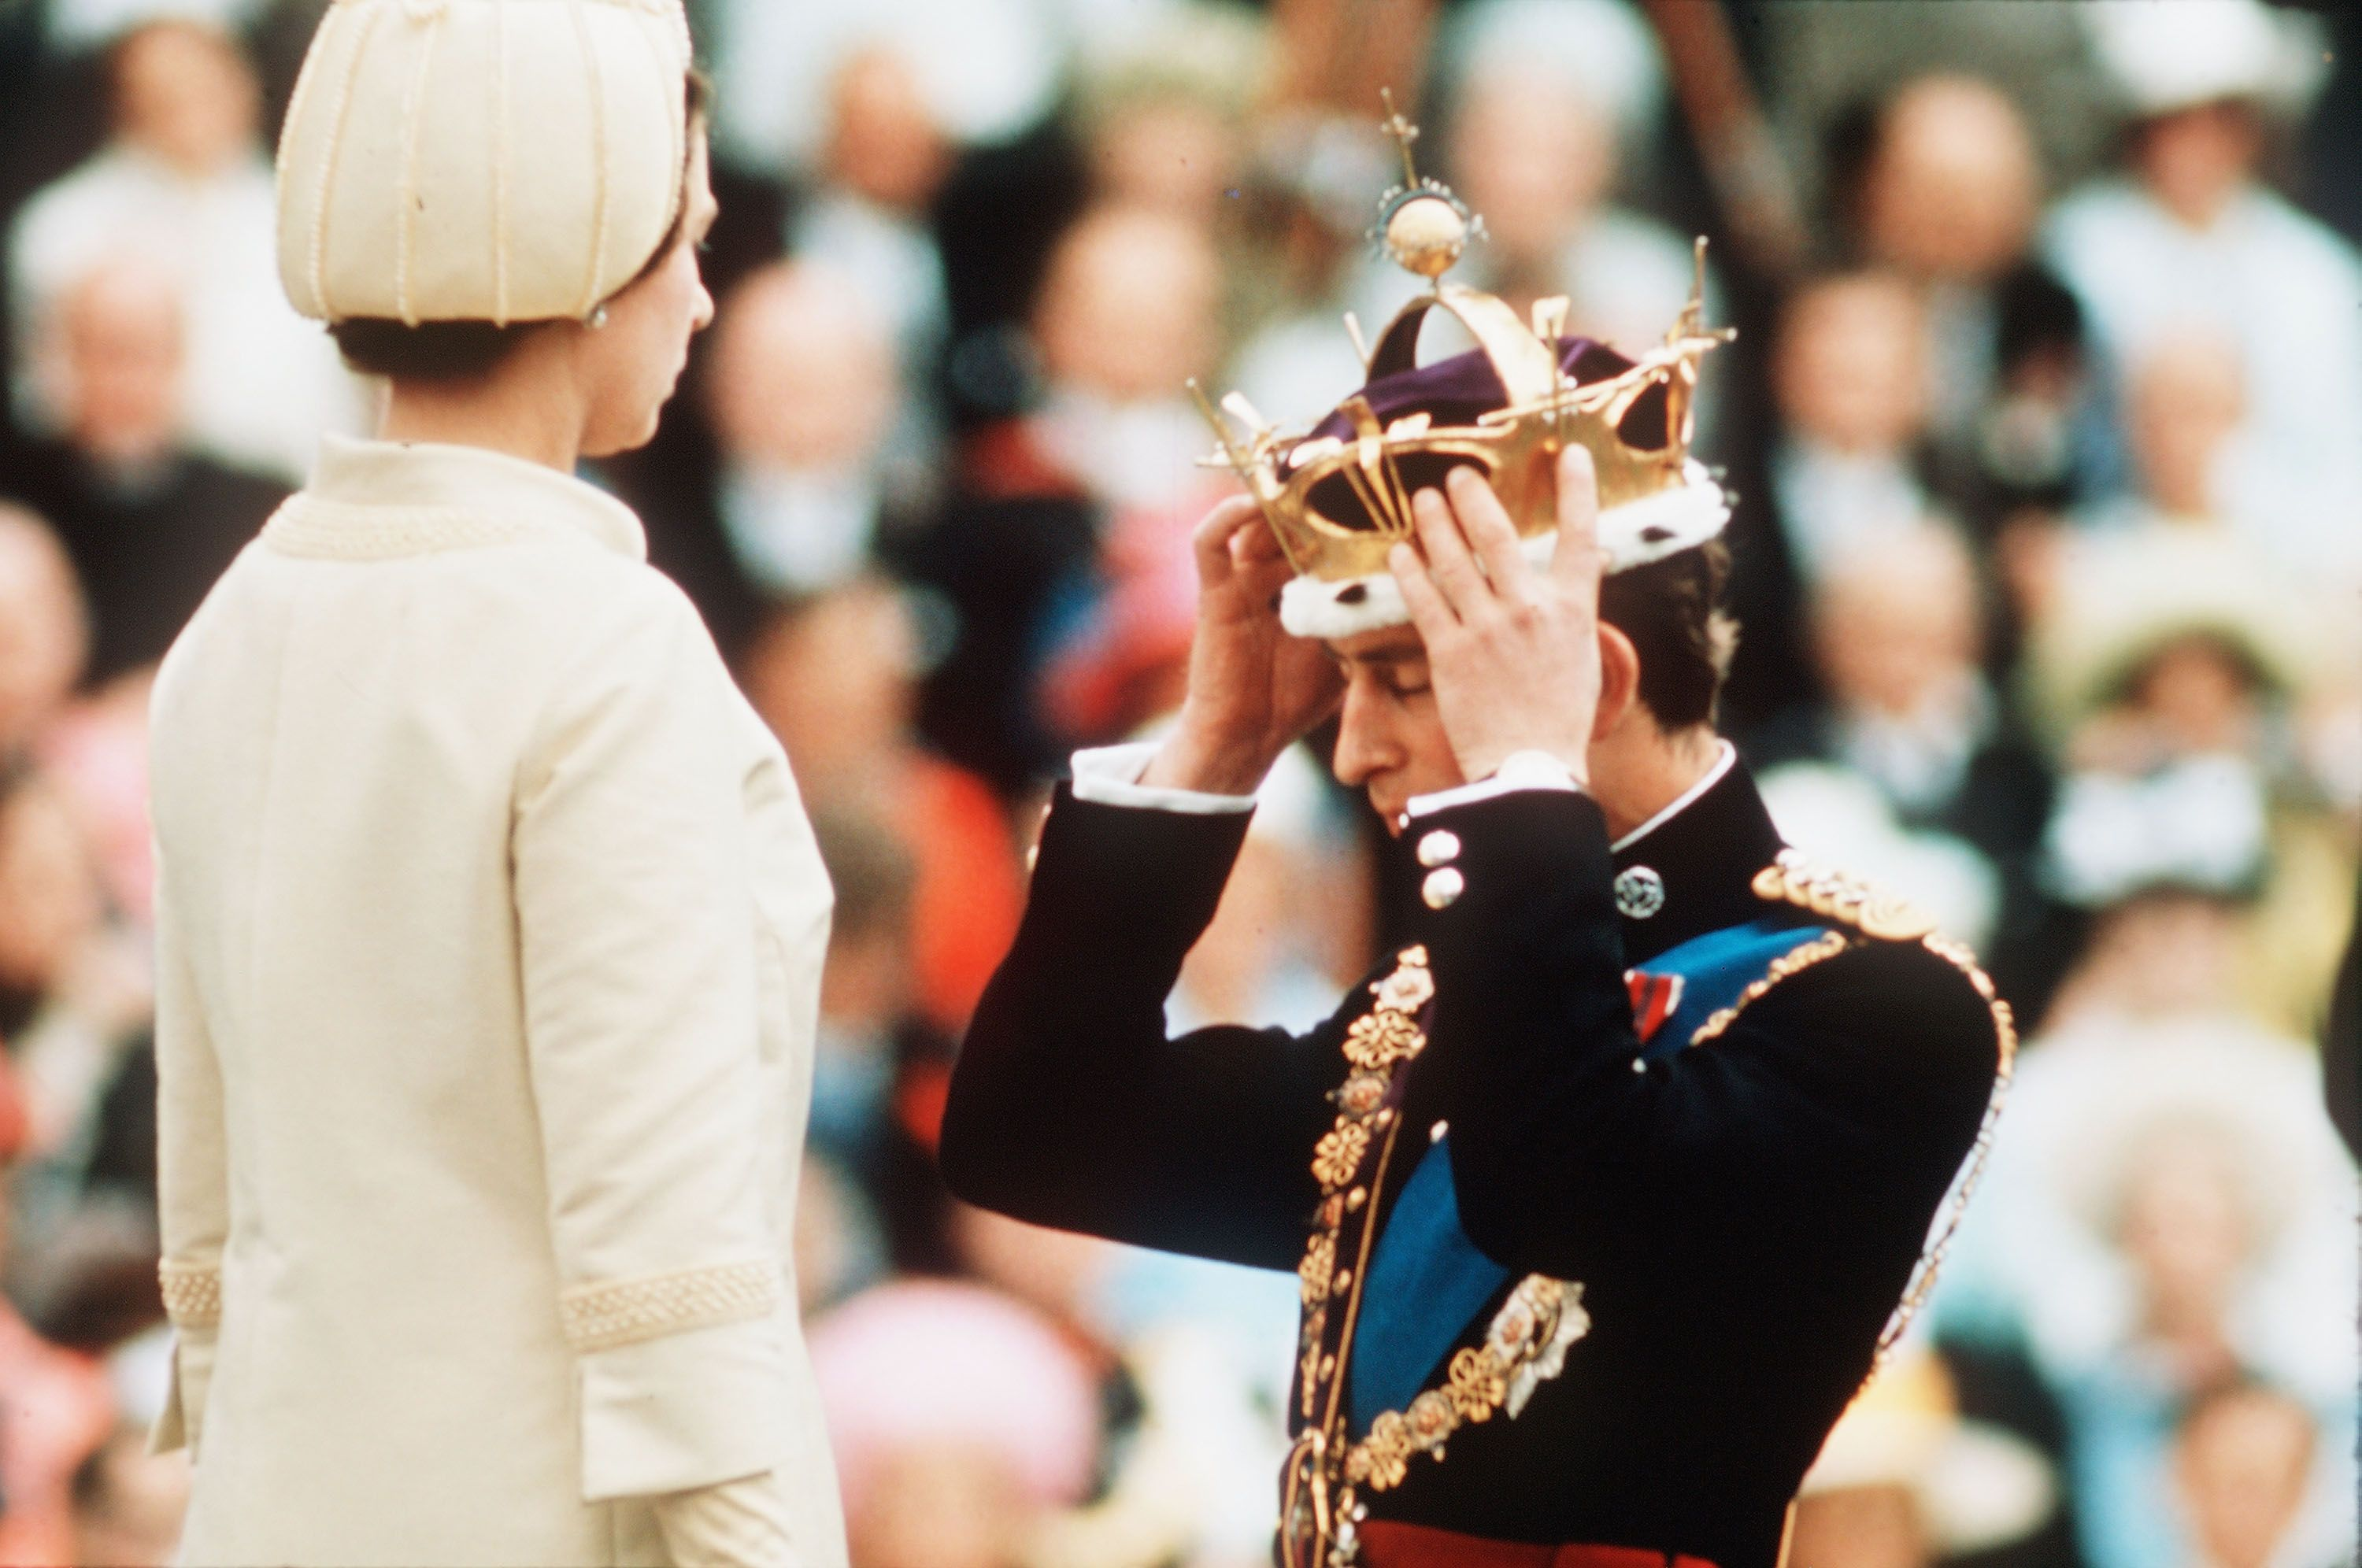 Prince Charles's Prince of Wales Coronet Has an Actual Ping Pong Ball Hidden Inside It